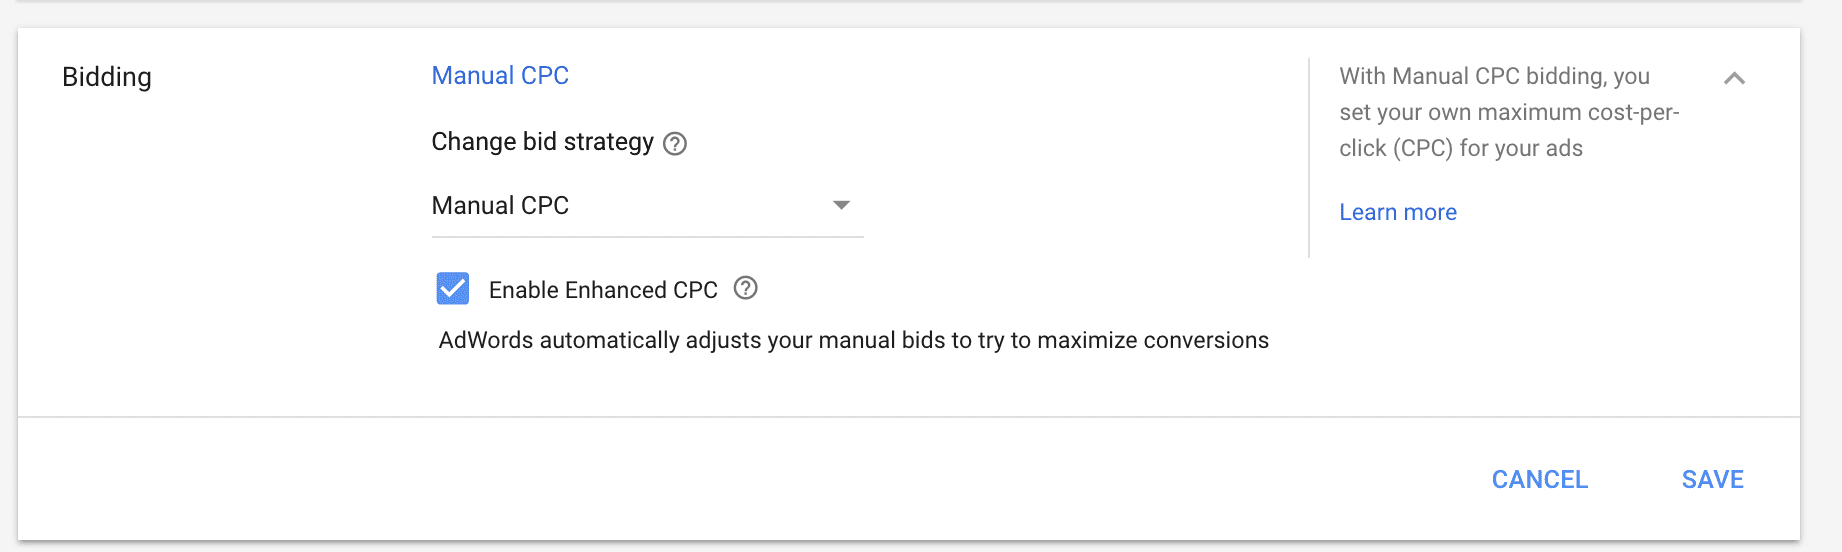 Setting your bidding strategy in Google Adwords, here shows manual cpc with enhanced cpc